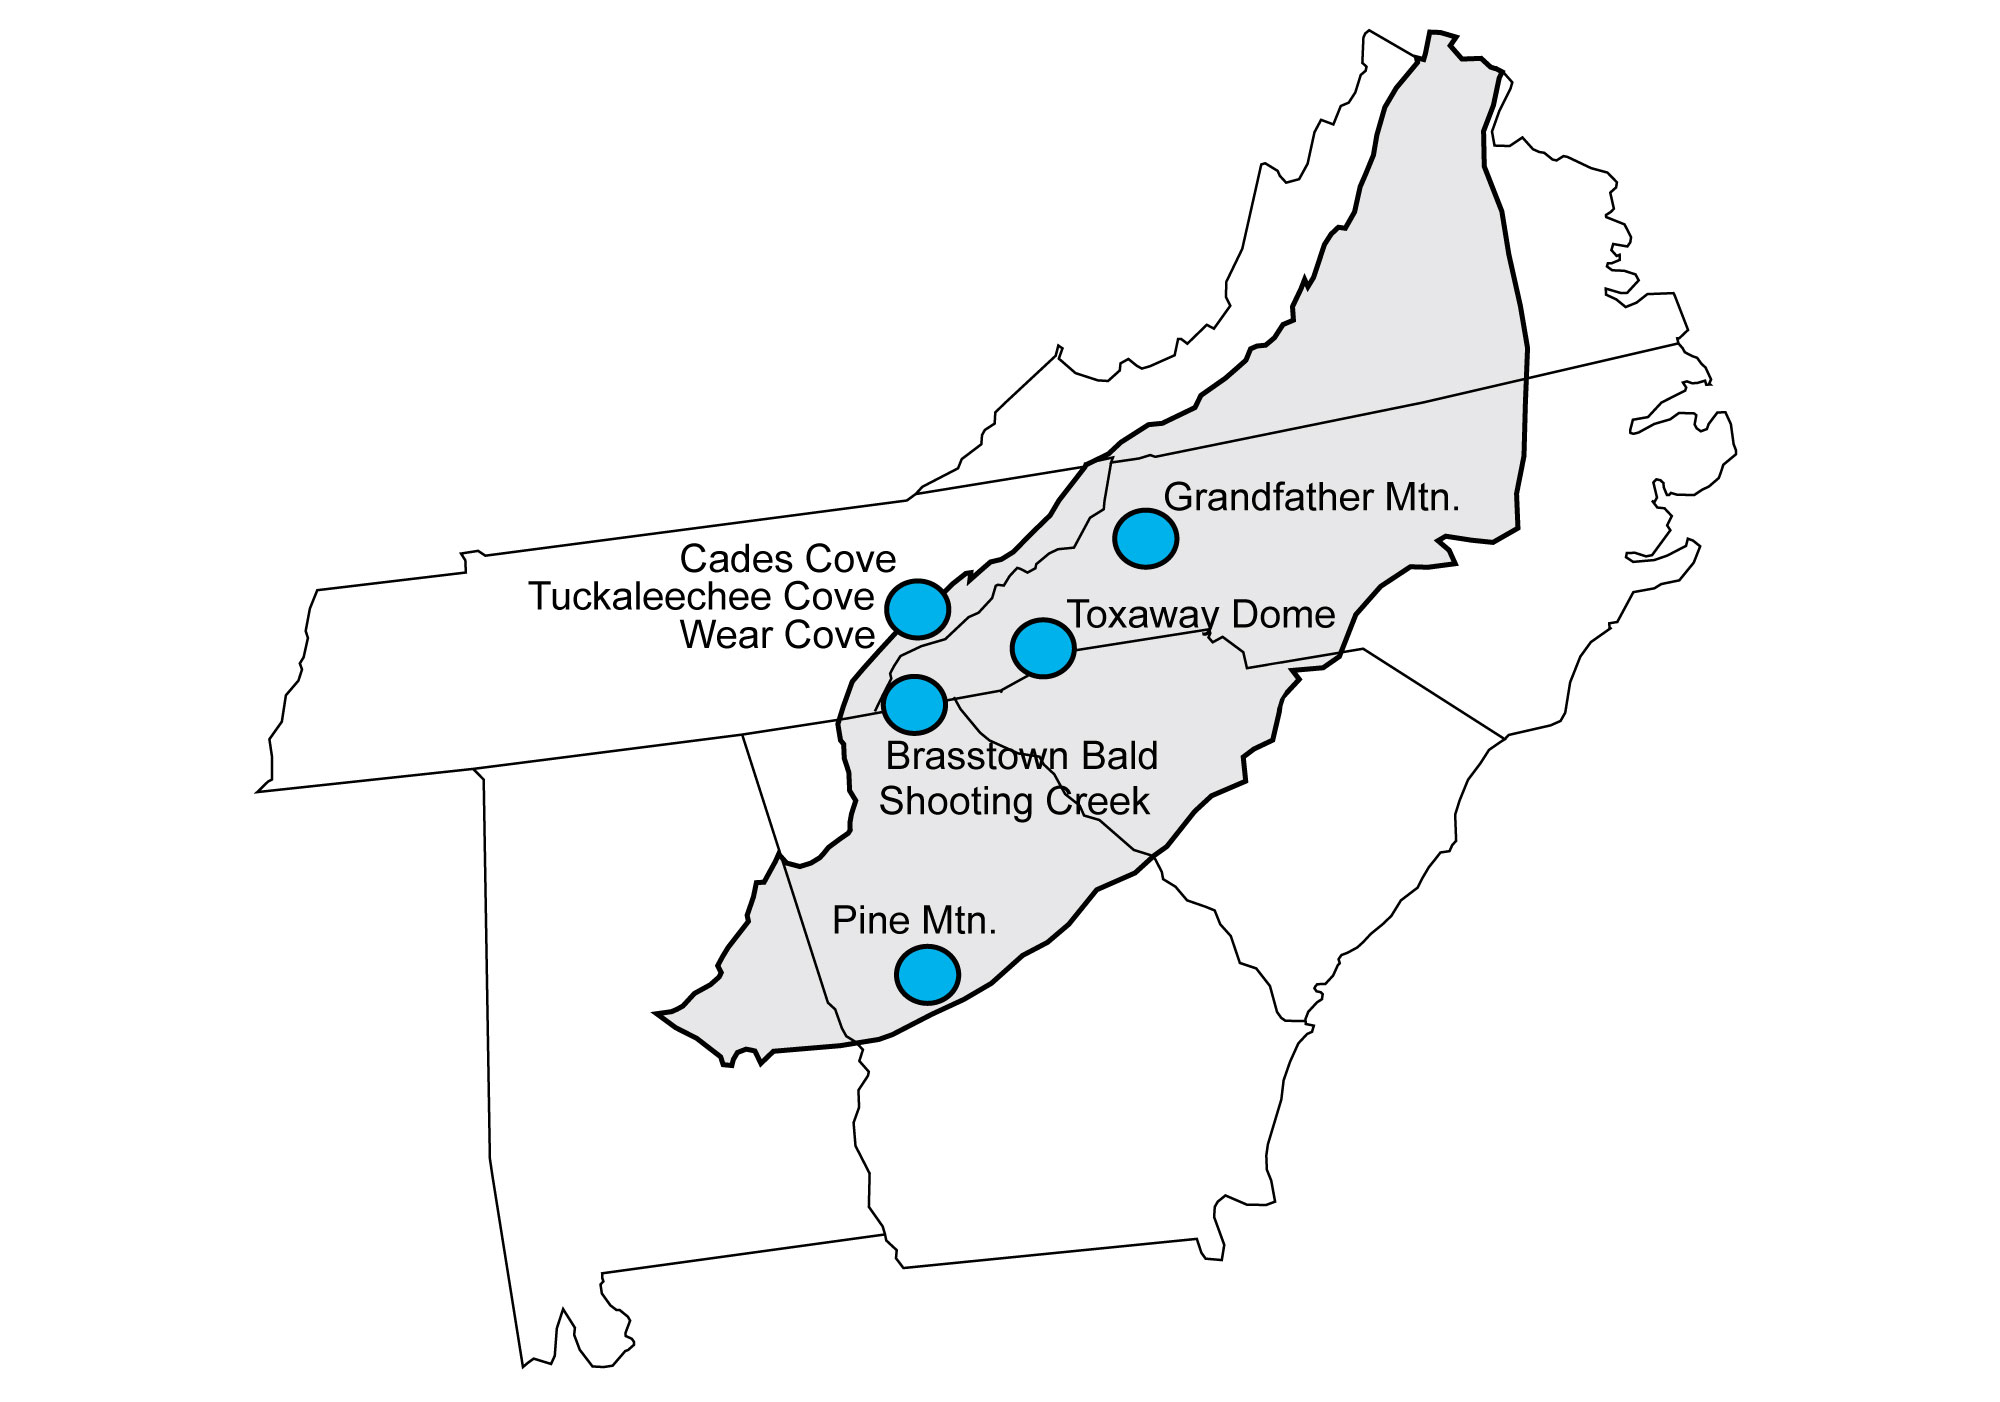 Map showing locations of geologic windows in the Blue Ridge and Piedmont regions.